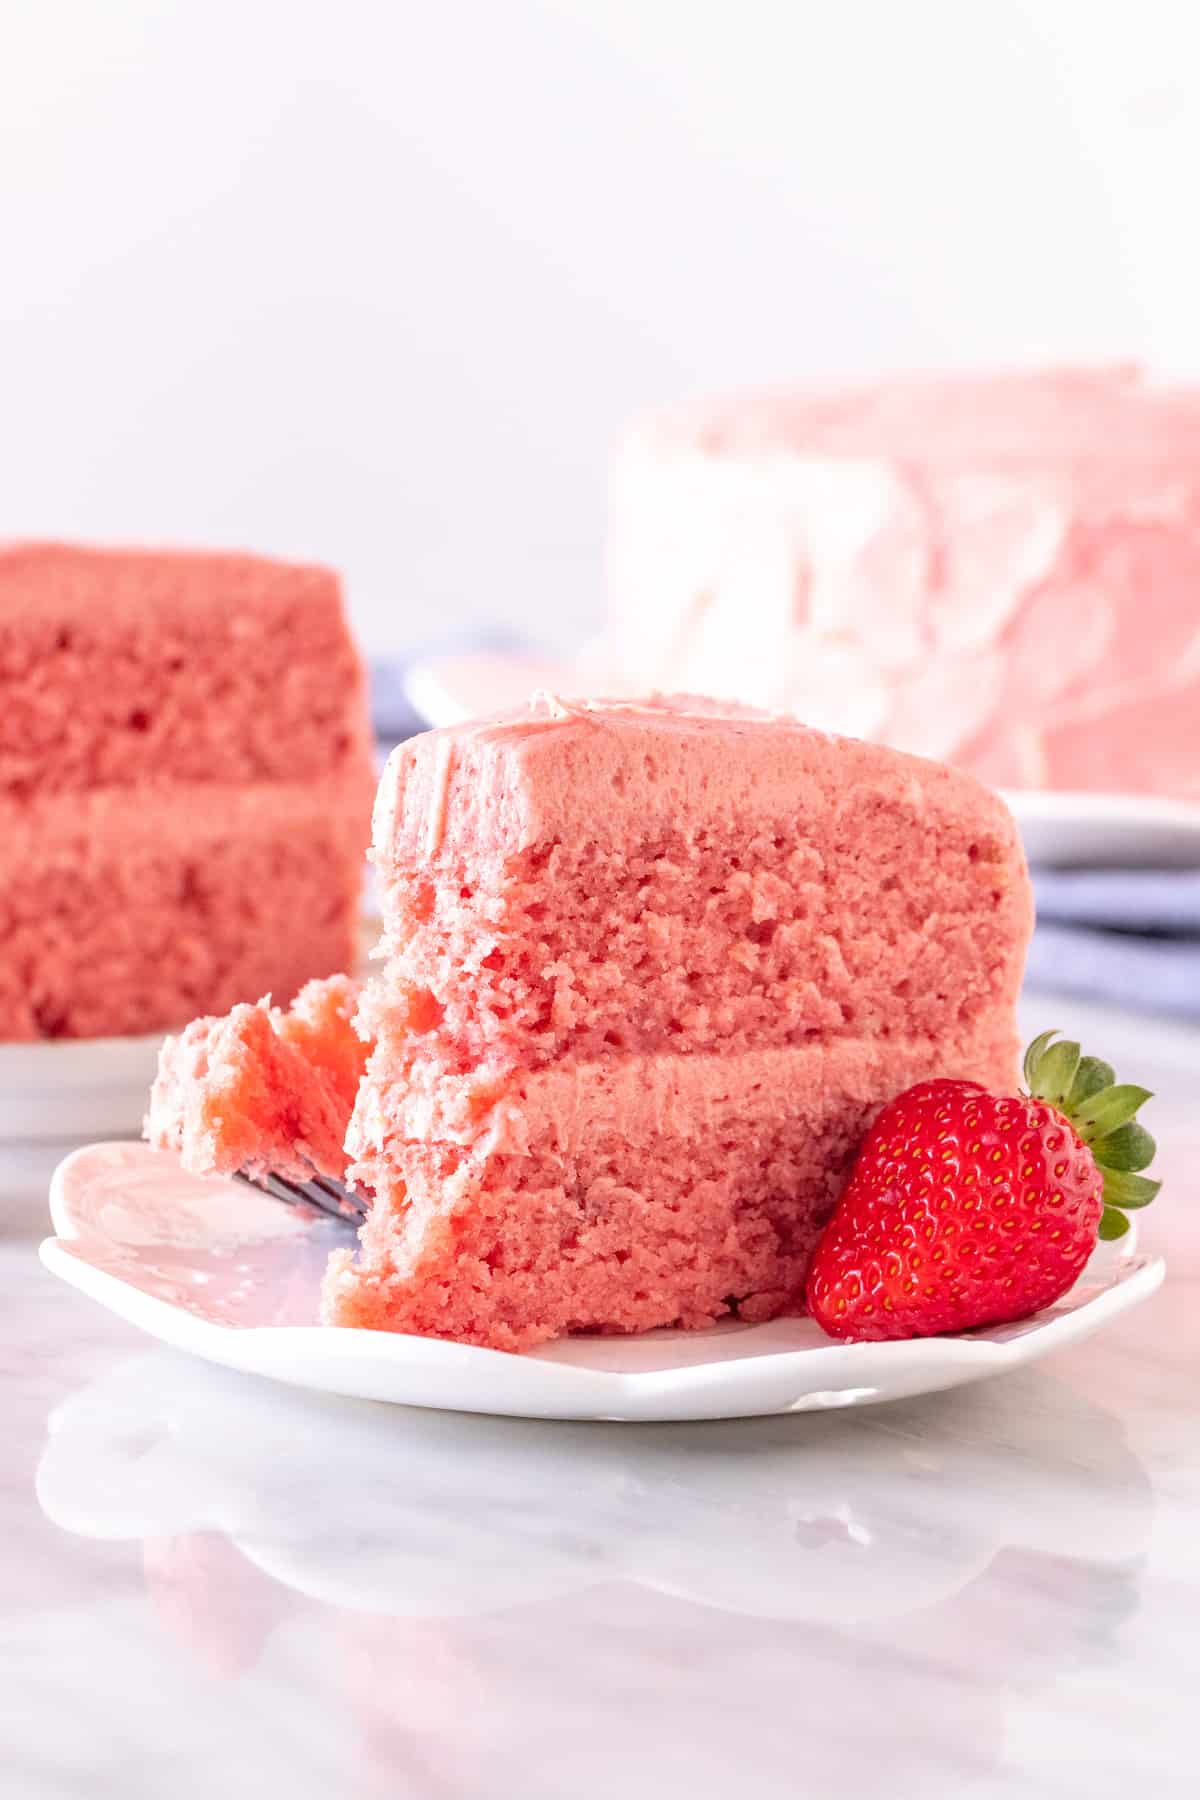 Slice of strawberry cake with strawberry frosting on a plate.